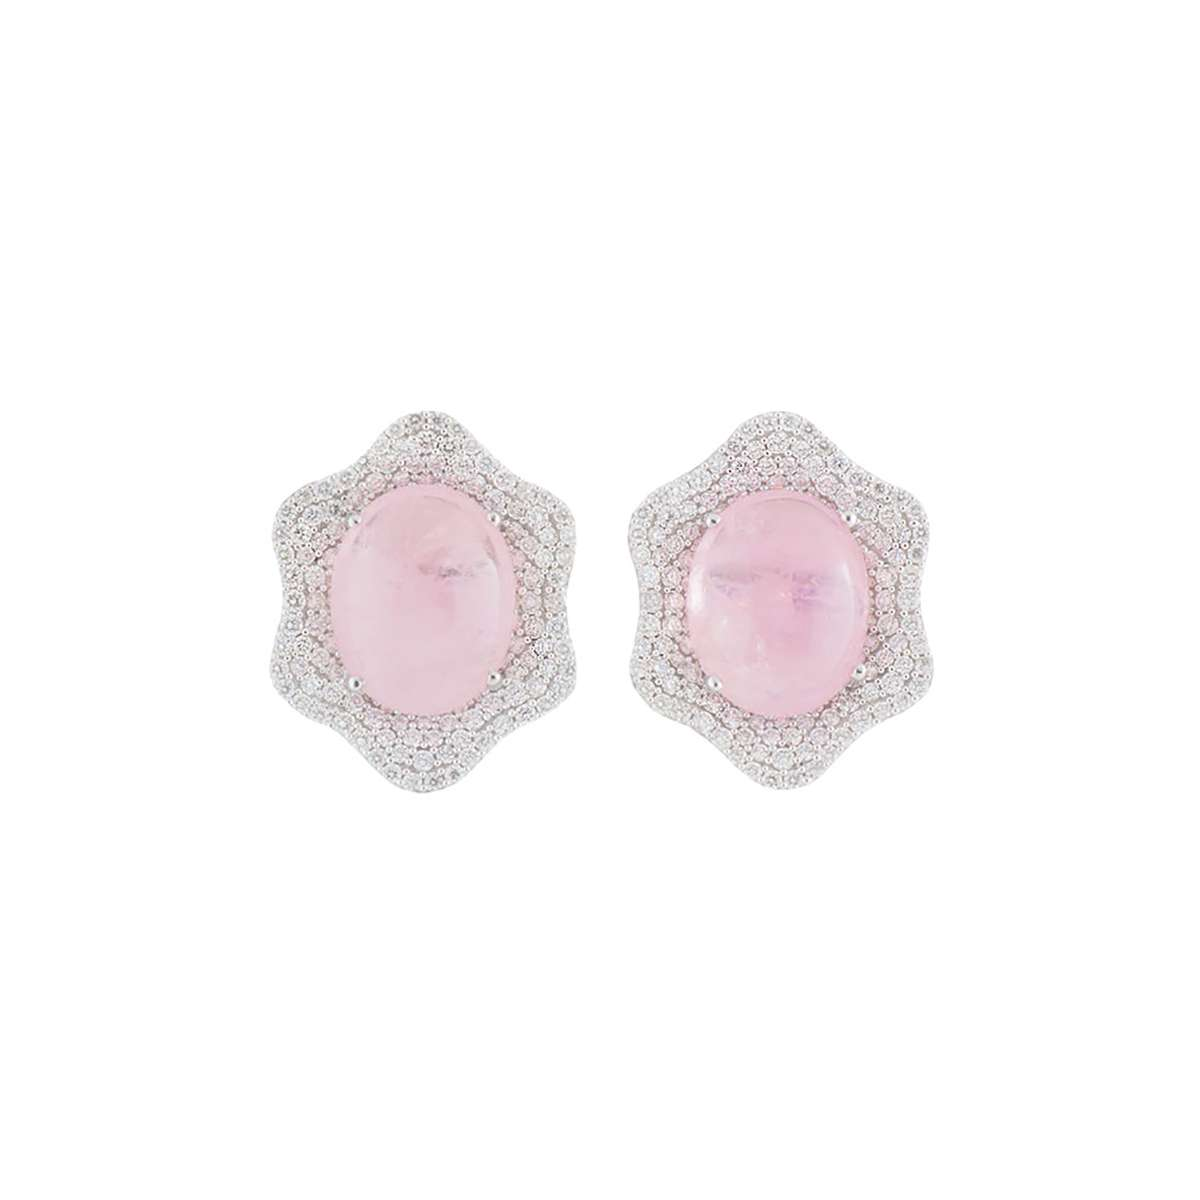 White Gold Diamond and Kunzite Earrings